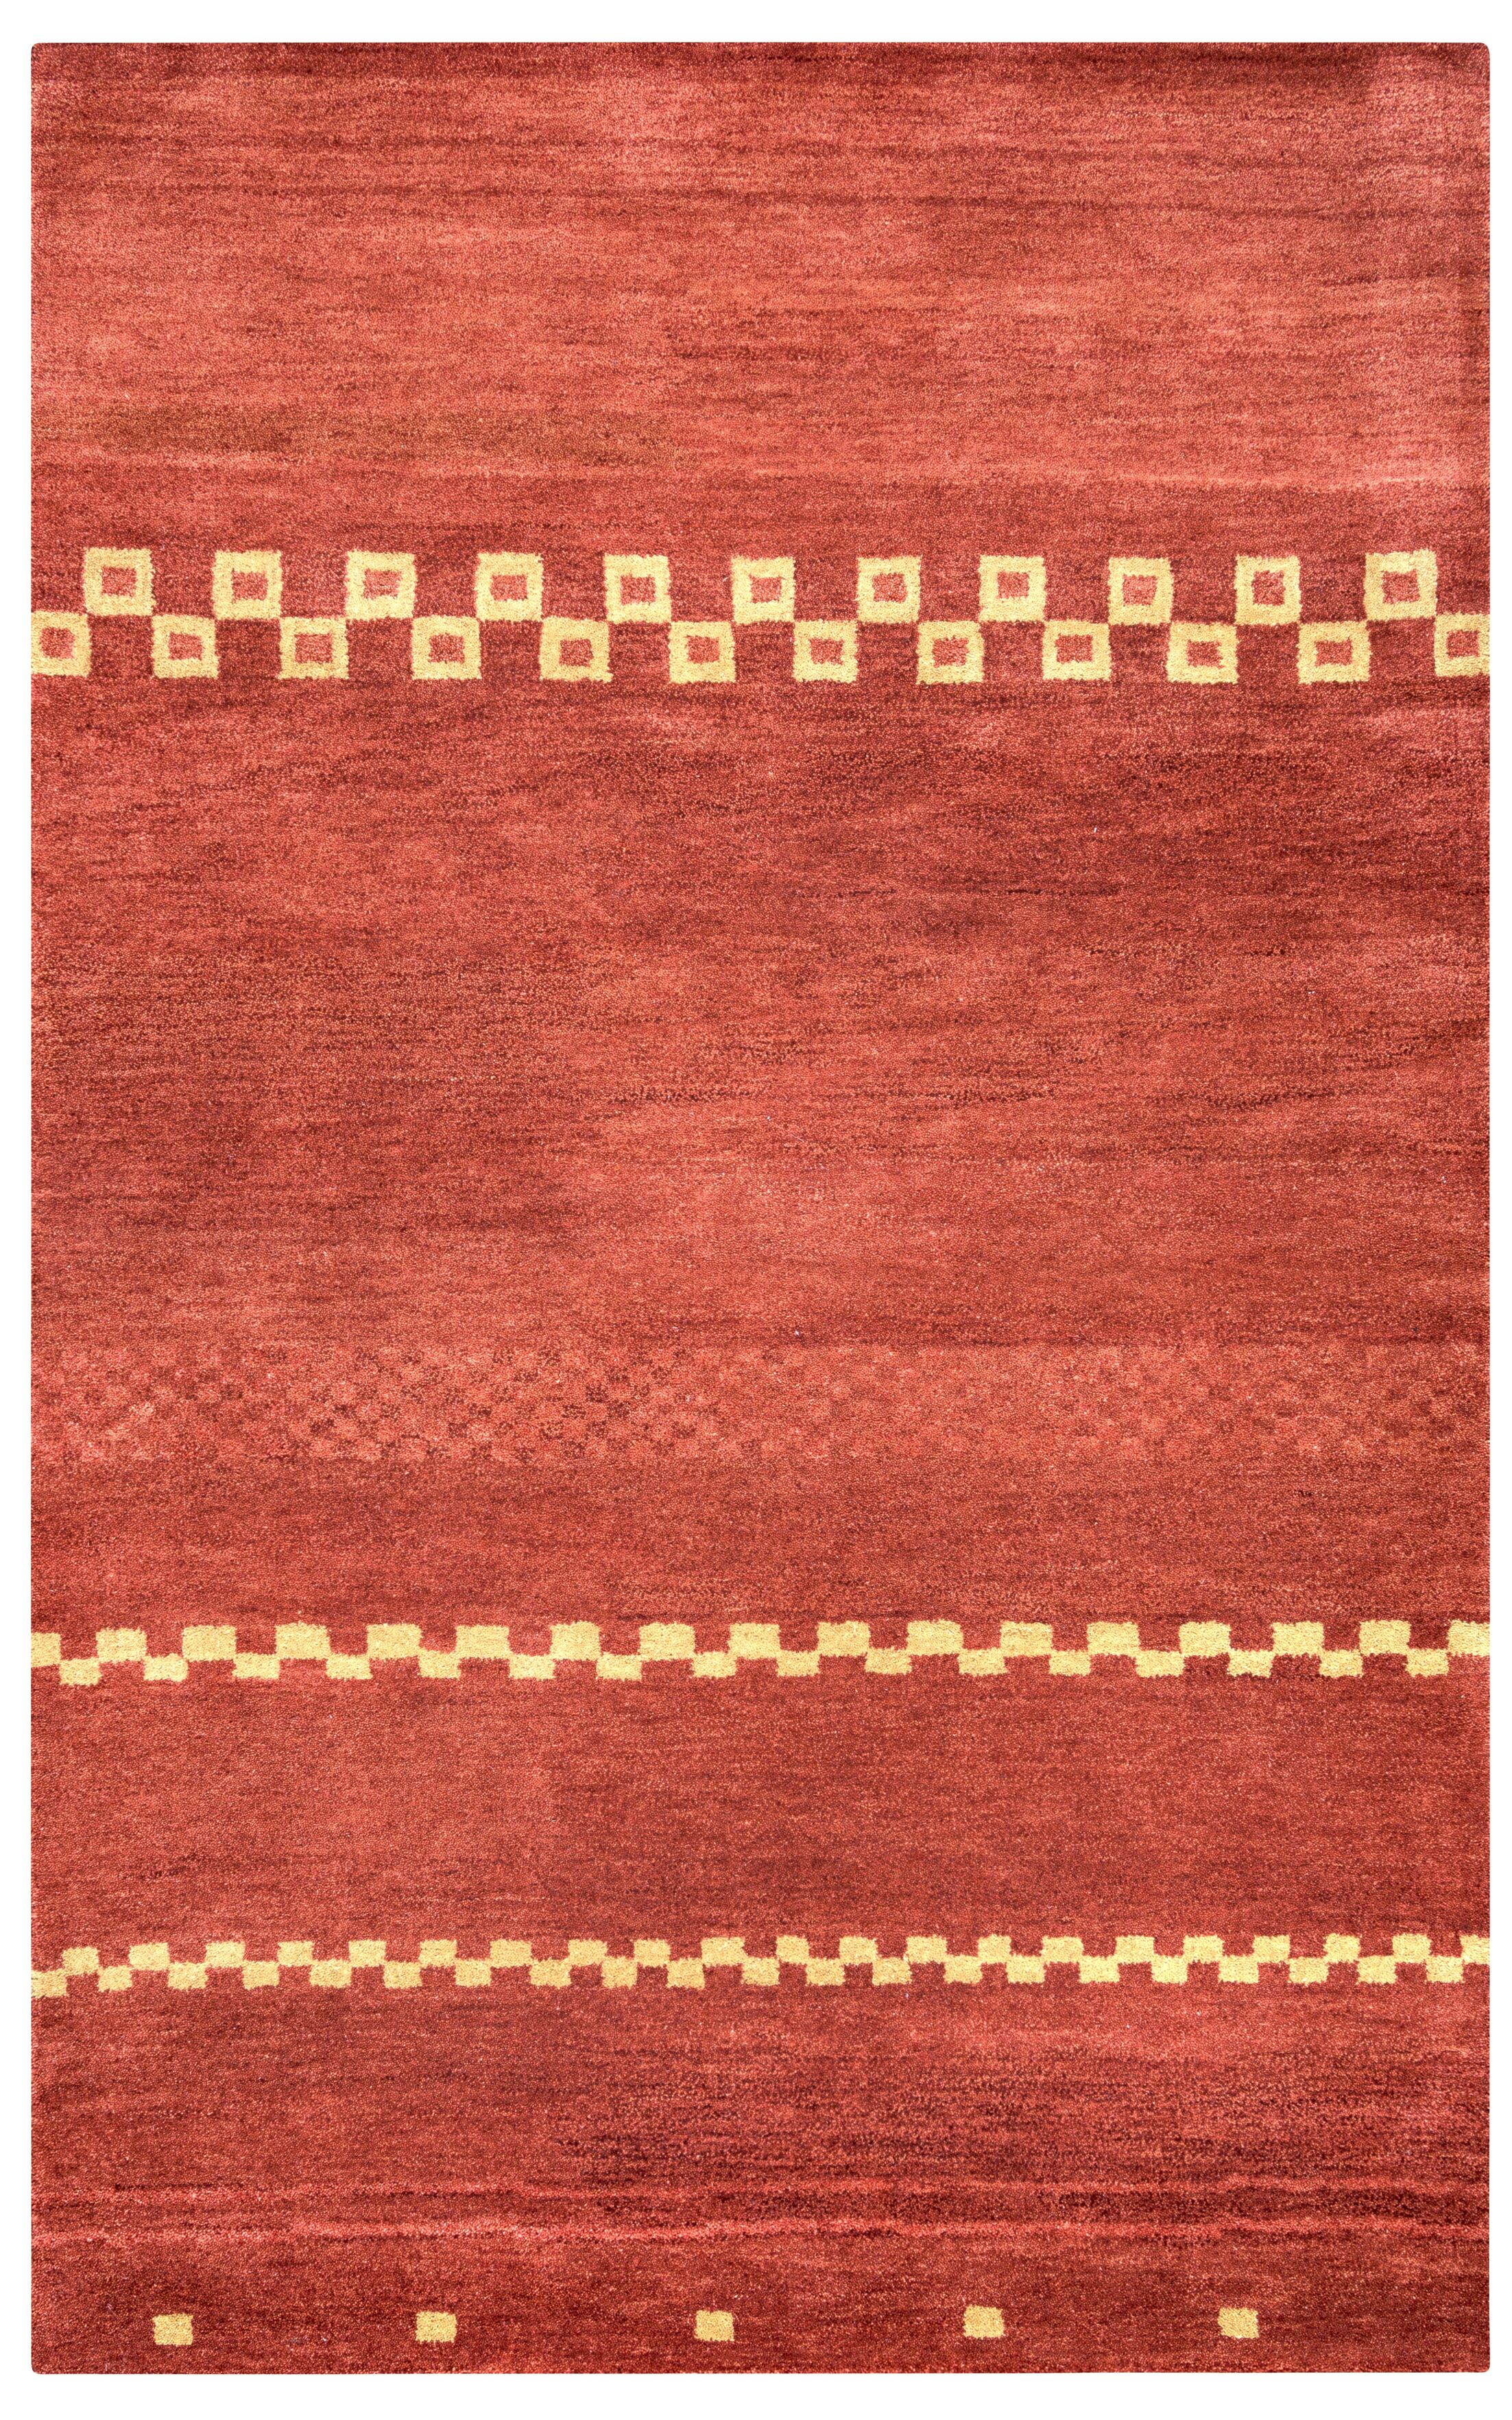 Congo Hand-Tufted Red Area Rug Rug Size: Runner 2'6